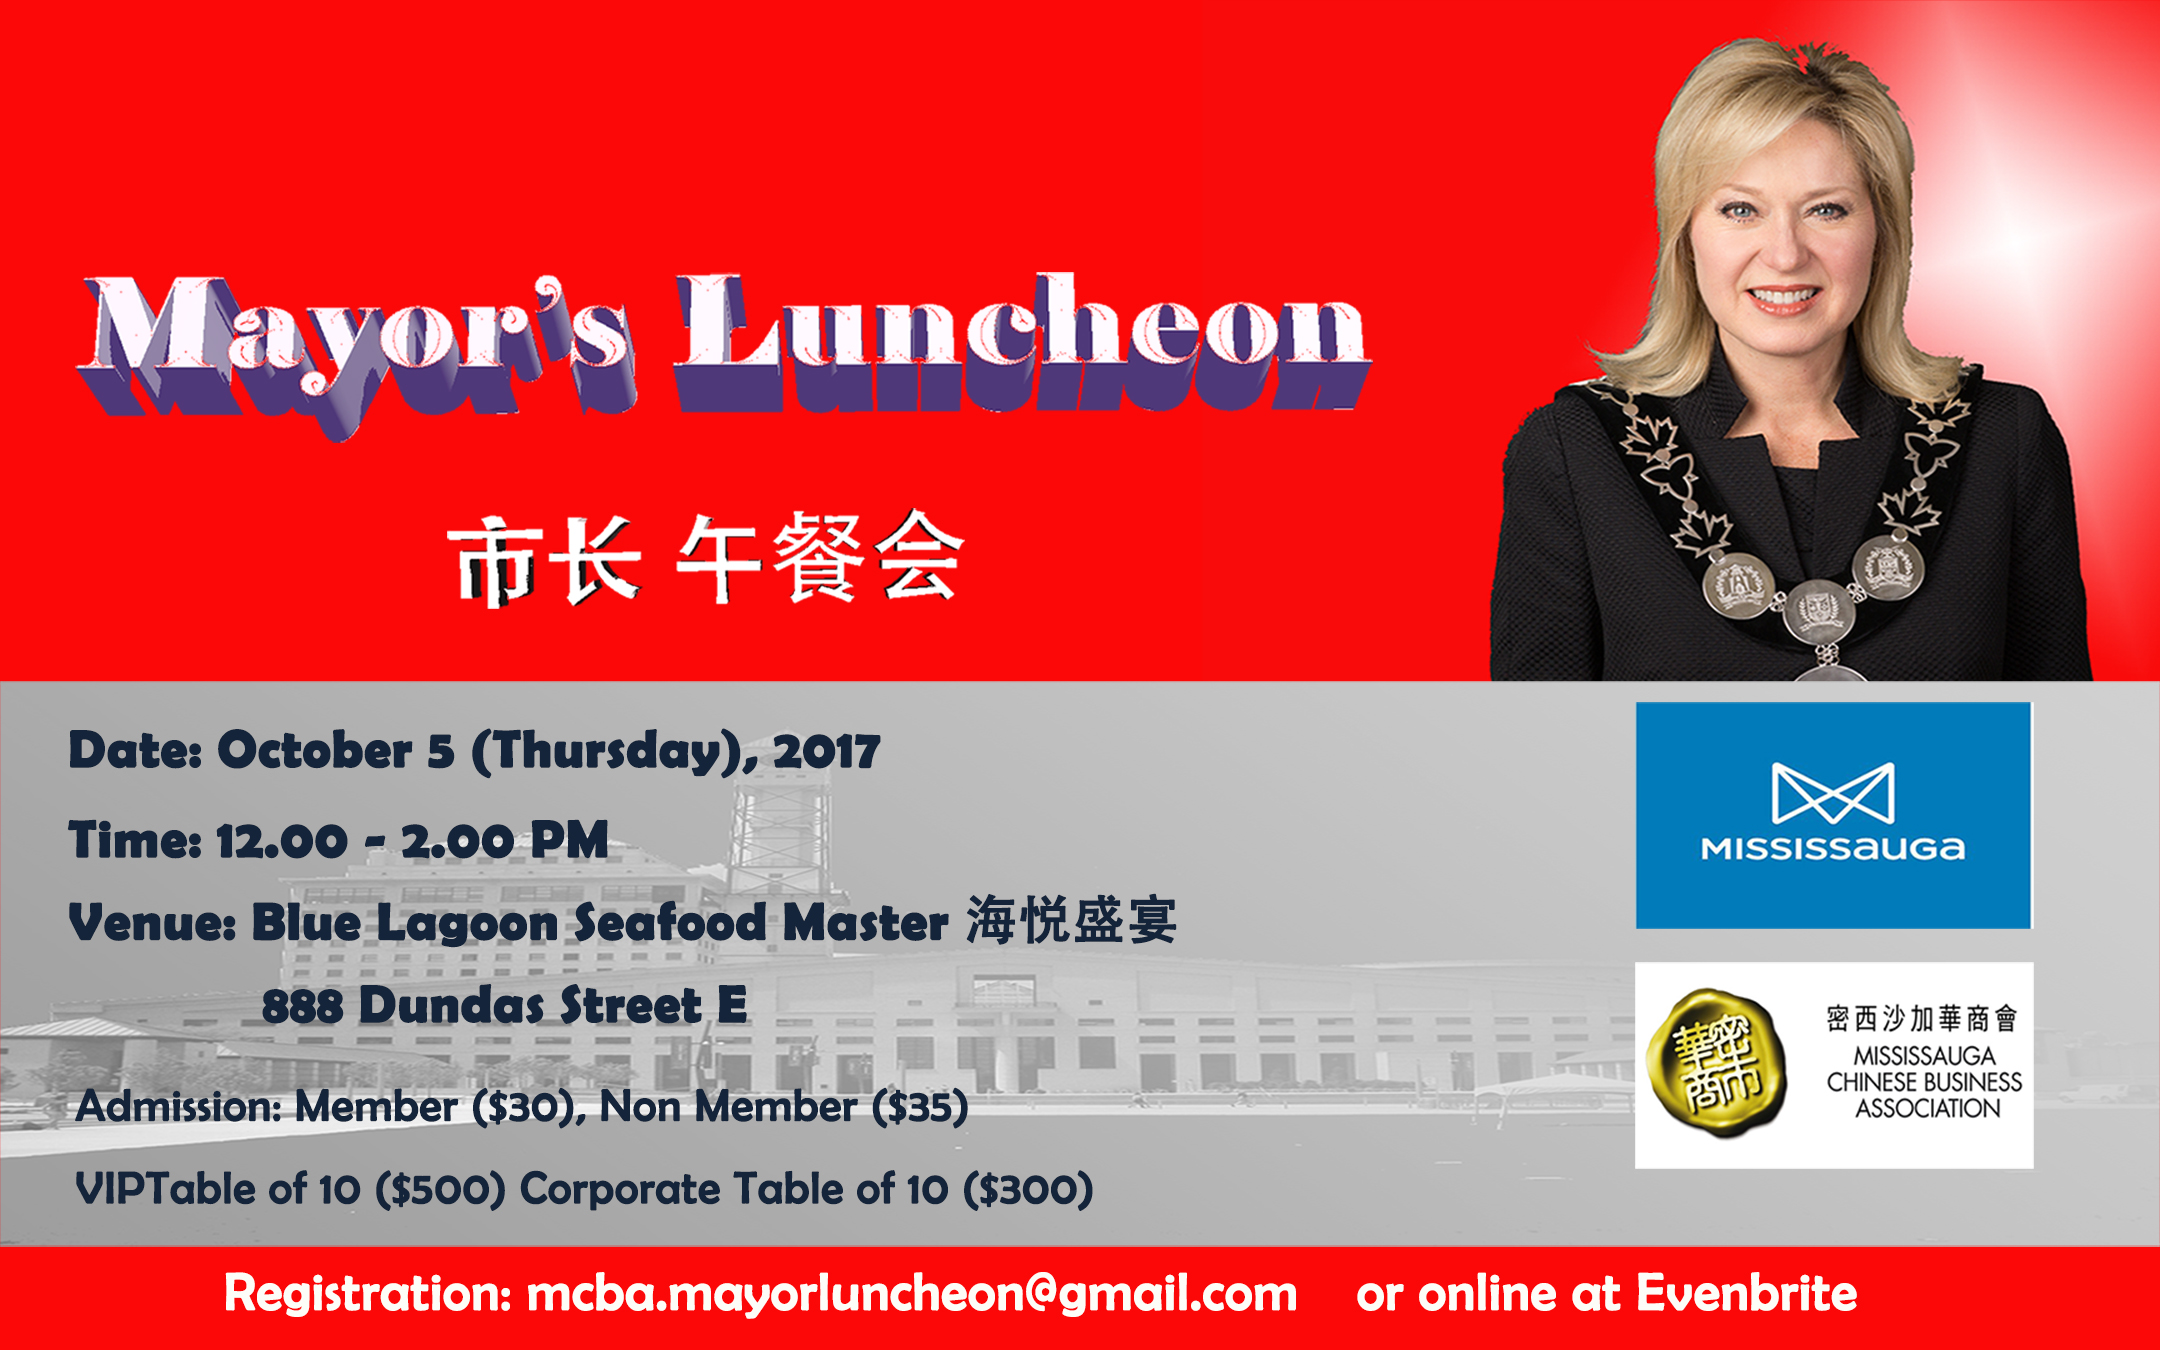 Mississauga Mayor Bonnie Crombie Luncheon image from Pierre Wong email 12 Sep 2017